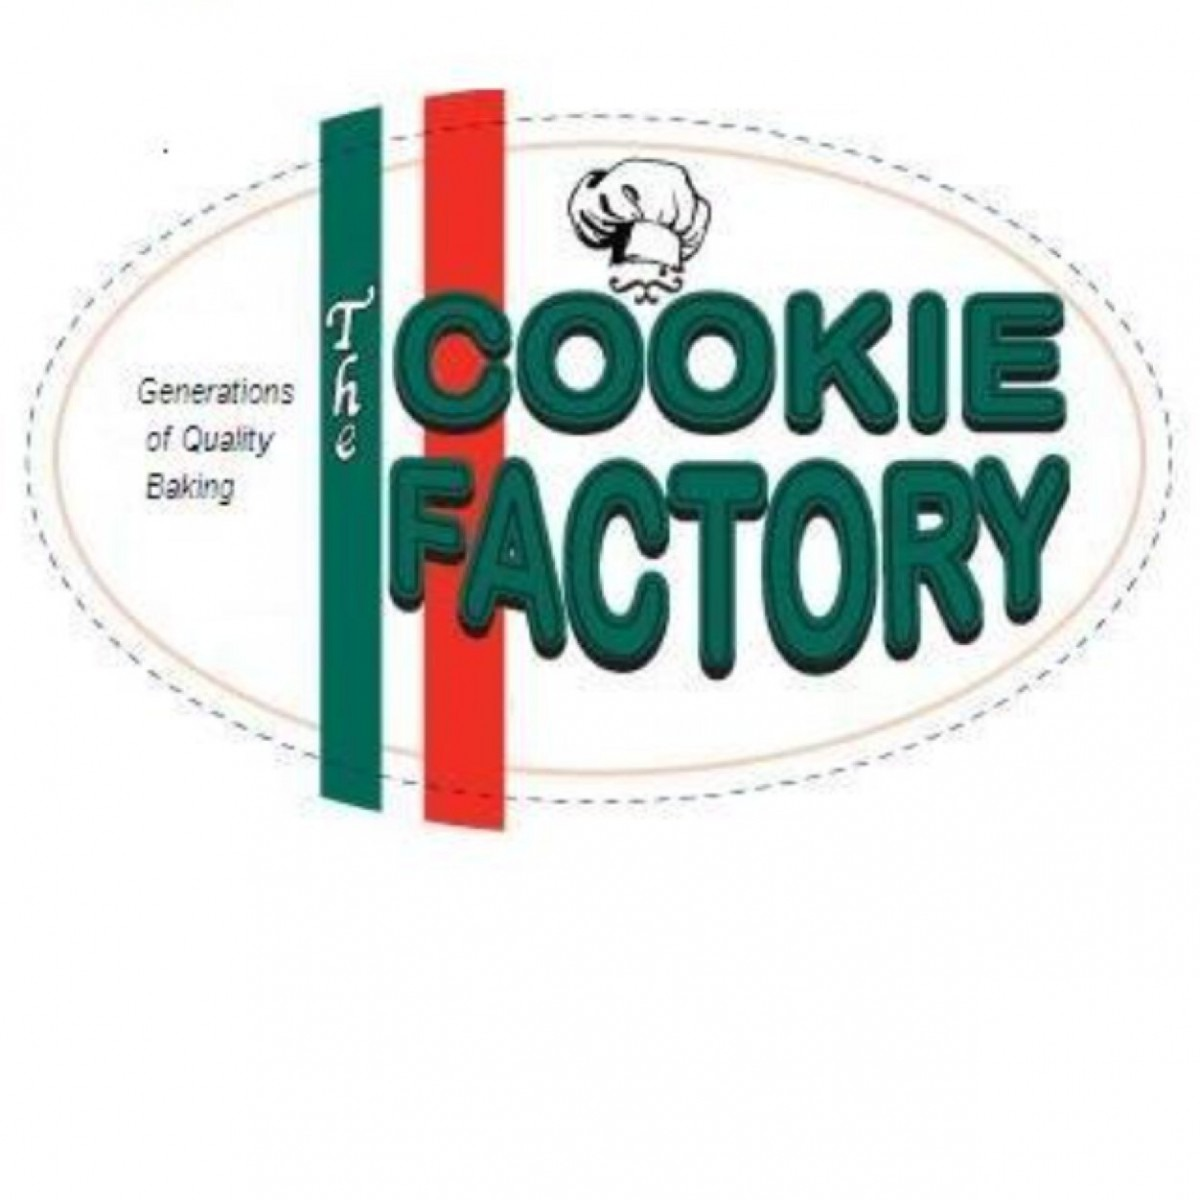 The Cookie Factory (@cookiefactoryny)